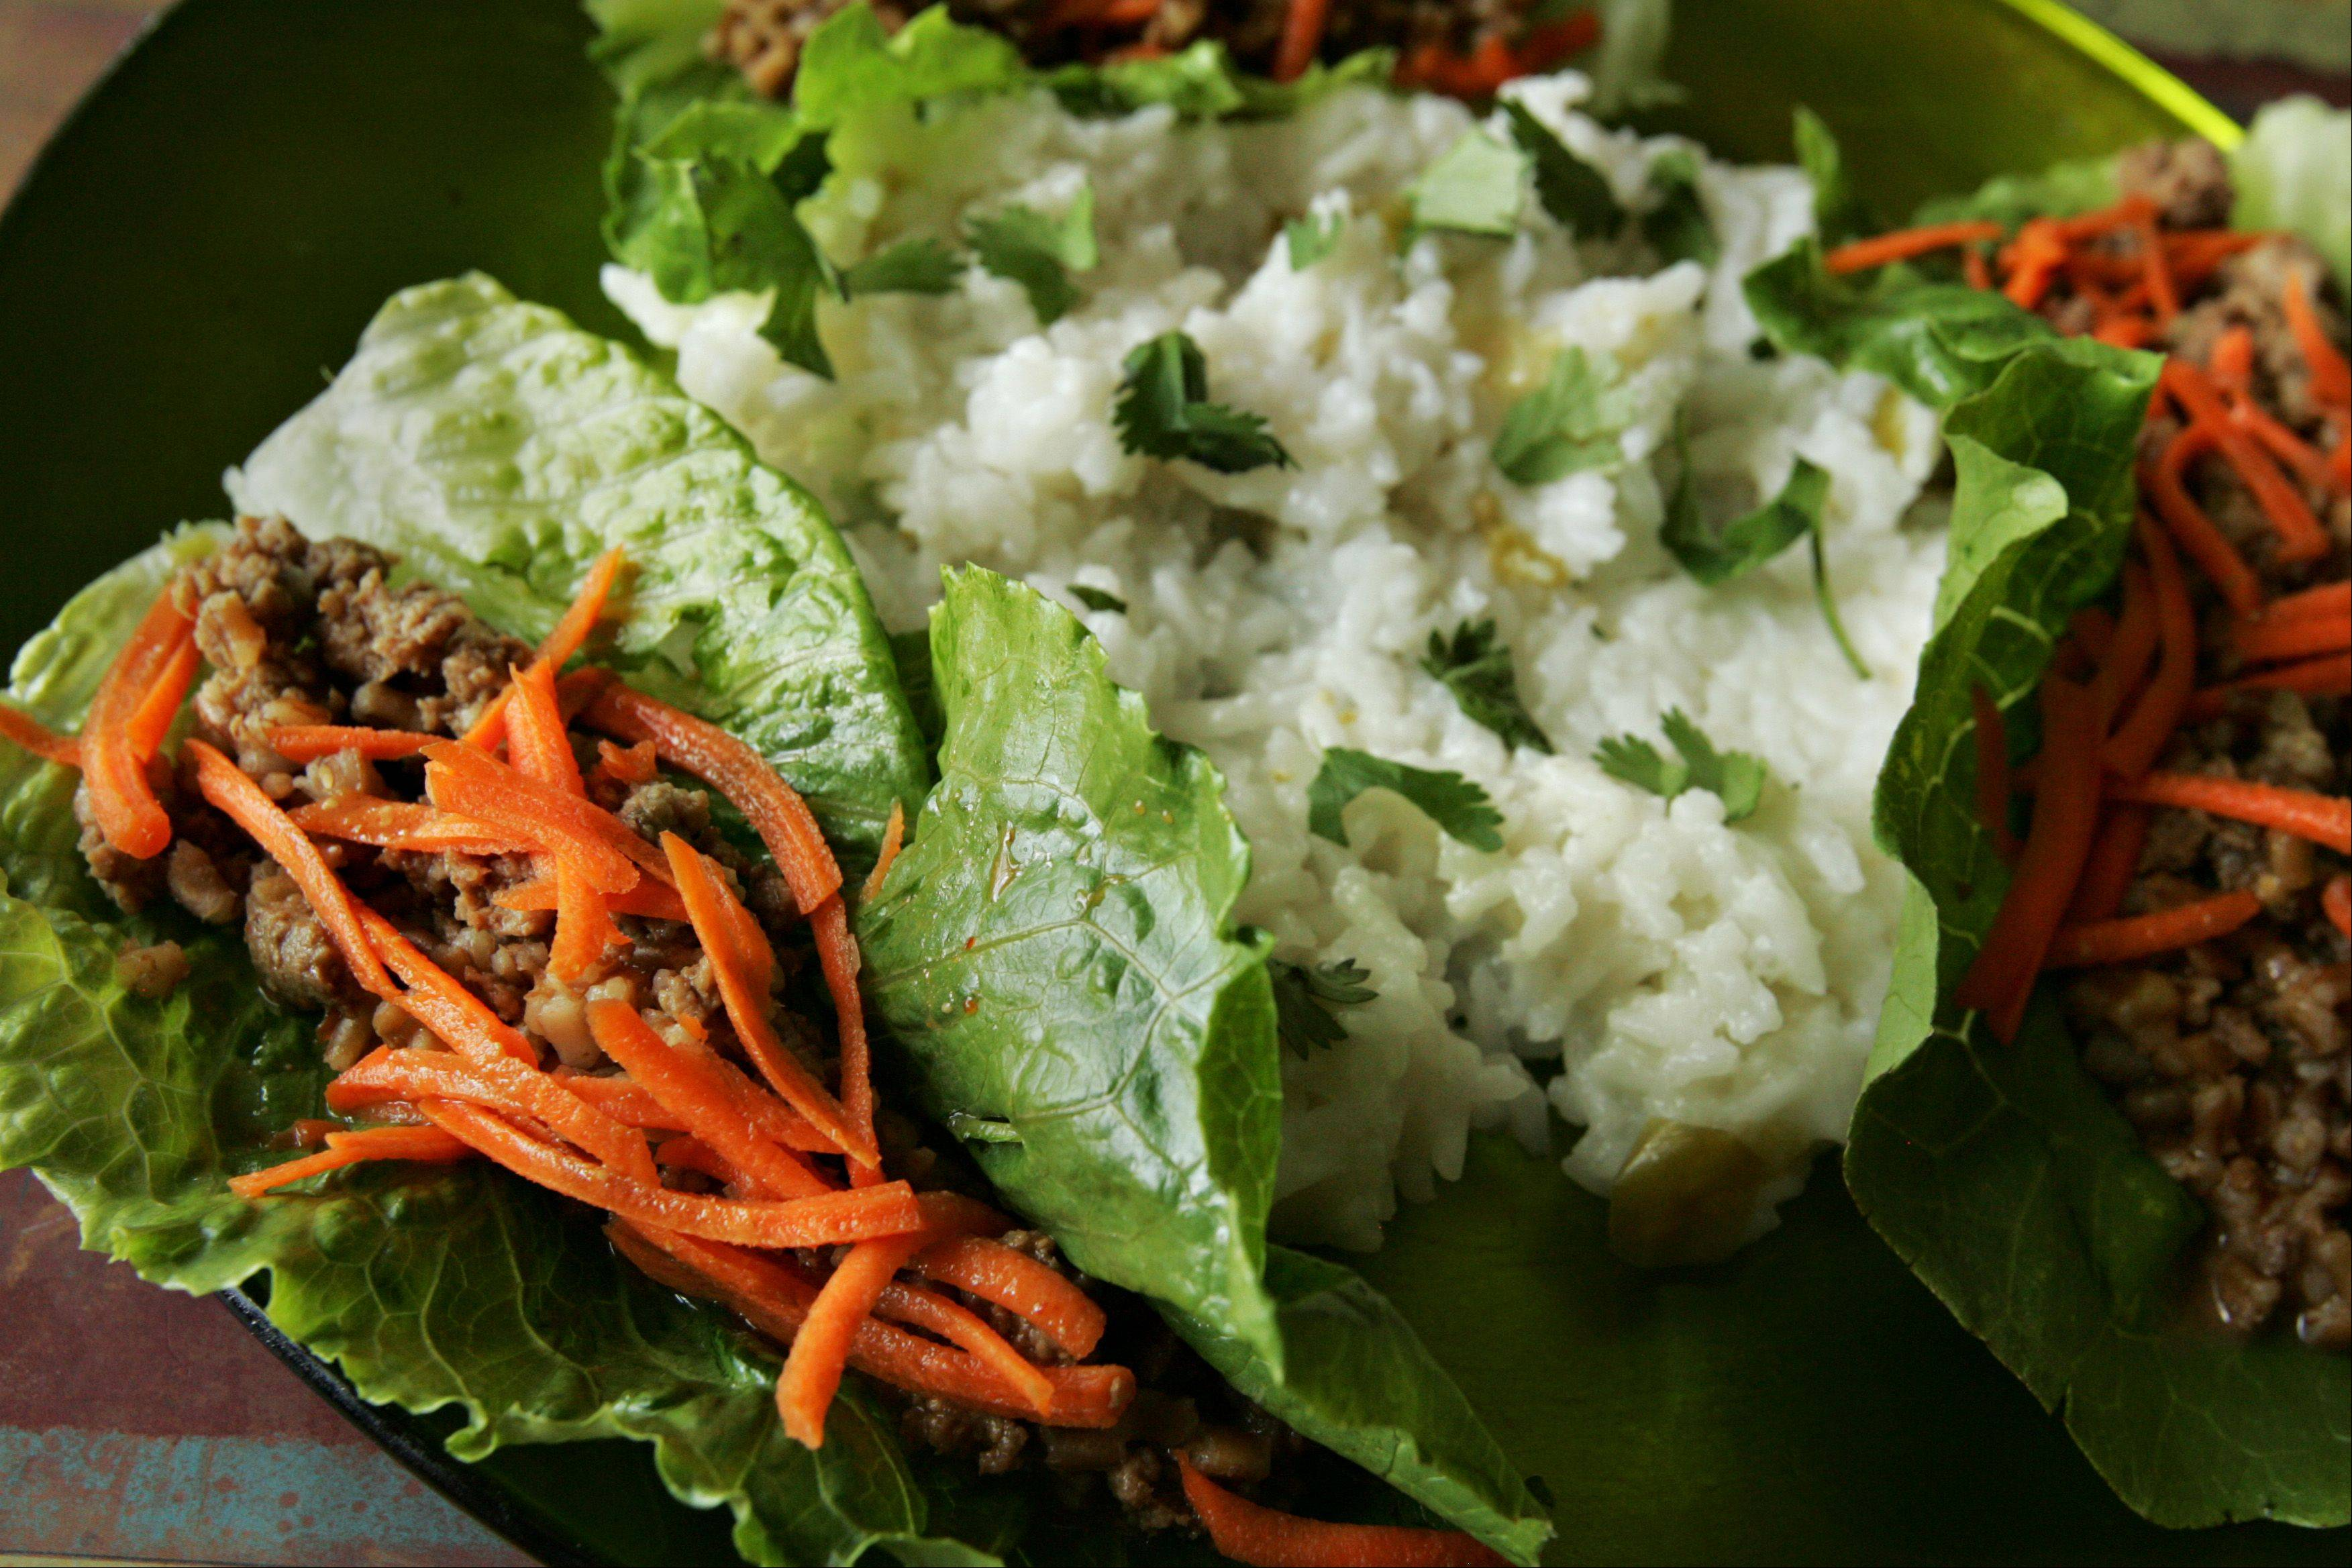 Michael Pennisi's Asian-style turkey and lettuce wraps won the 365 Everyday Value coconut milk recipe challenge.